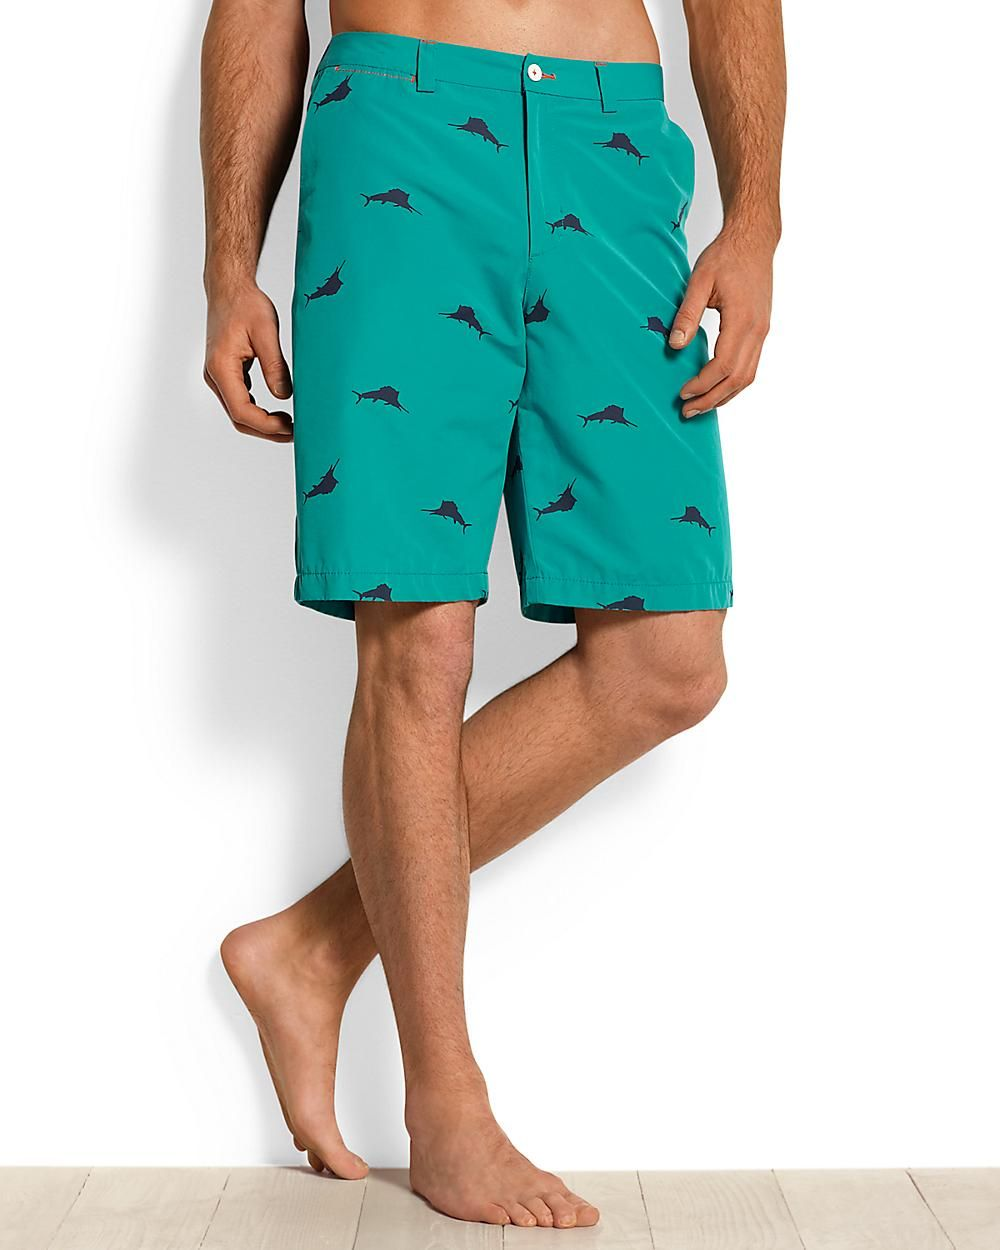 ac59789028cee6 maillots de bains pour hommes Tommy Bahama / Tommy Bahama bathing suits for  men